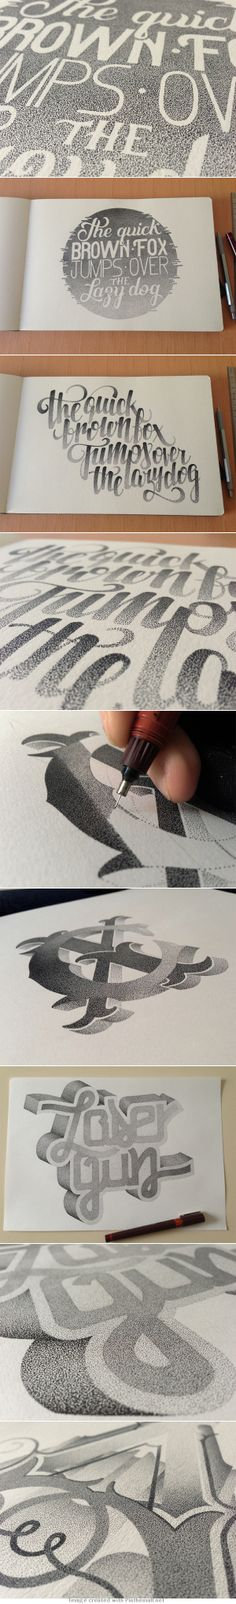 Stippled Hand Lettering http://www.thisiscolossal.com/2014/03/stippled-typography-casalta-xavier/ - created via http://pinthemall.net